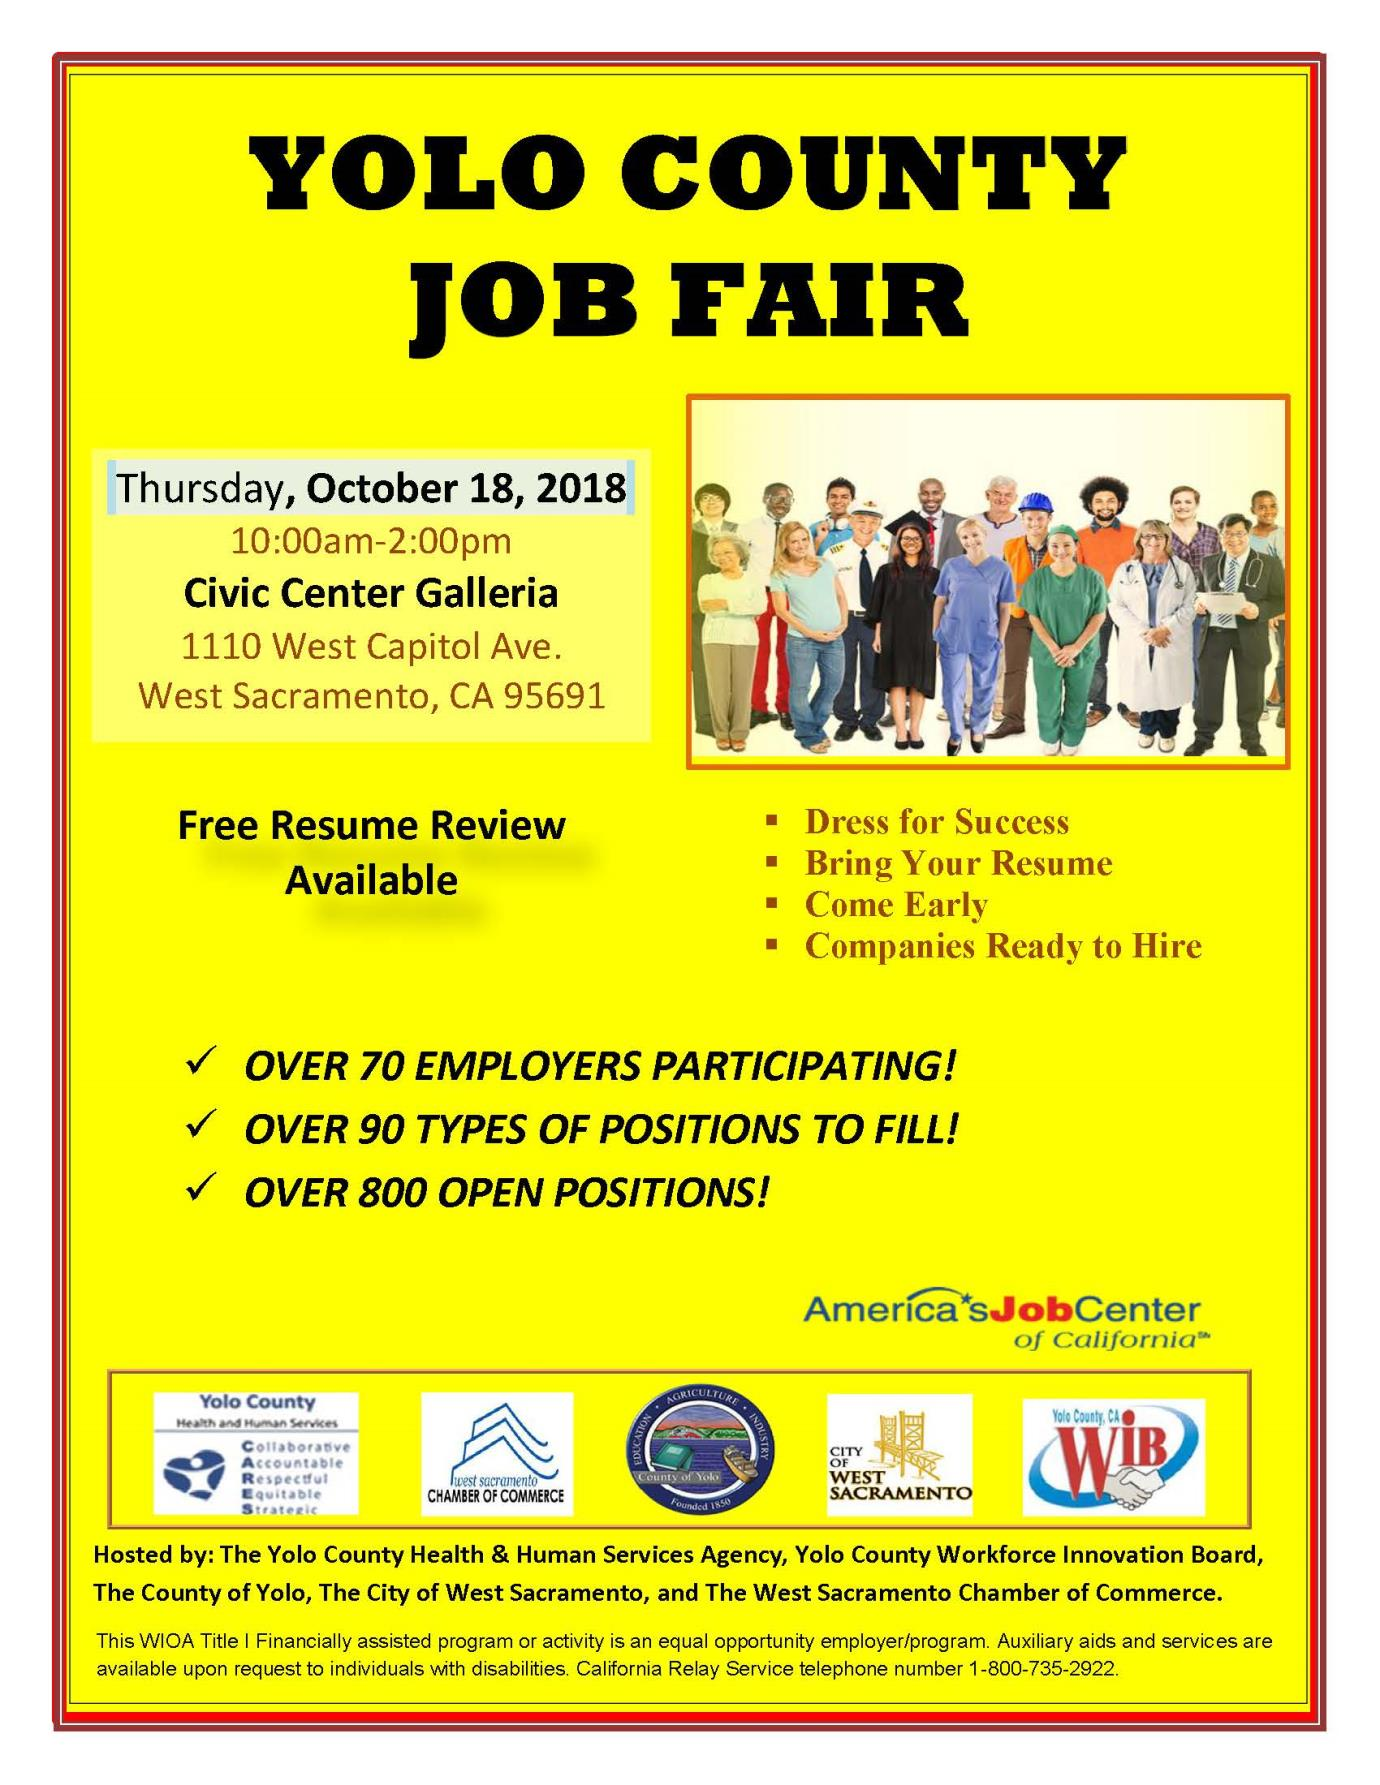 Employment Services Yolo County